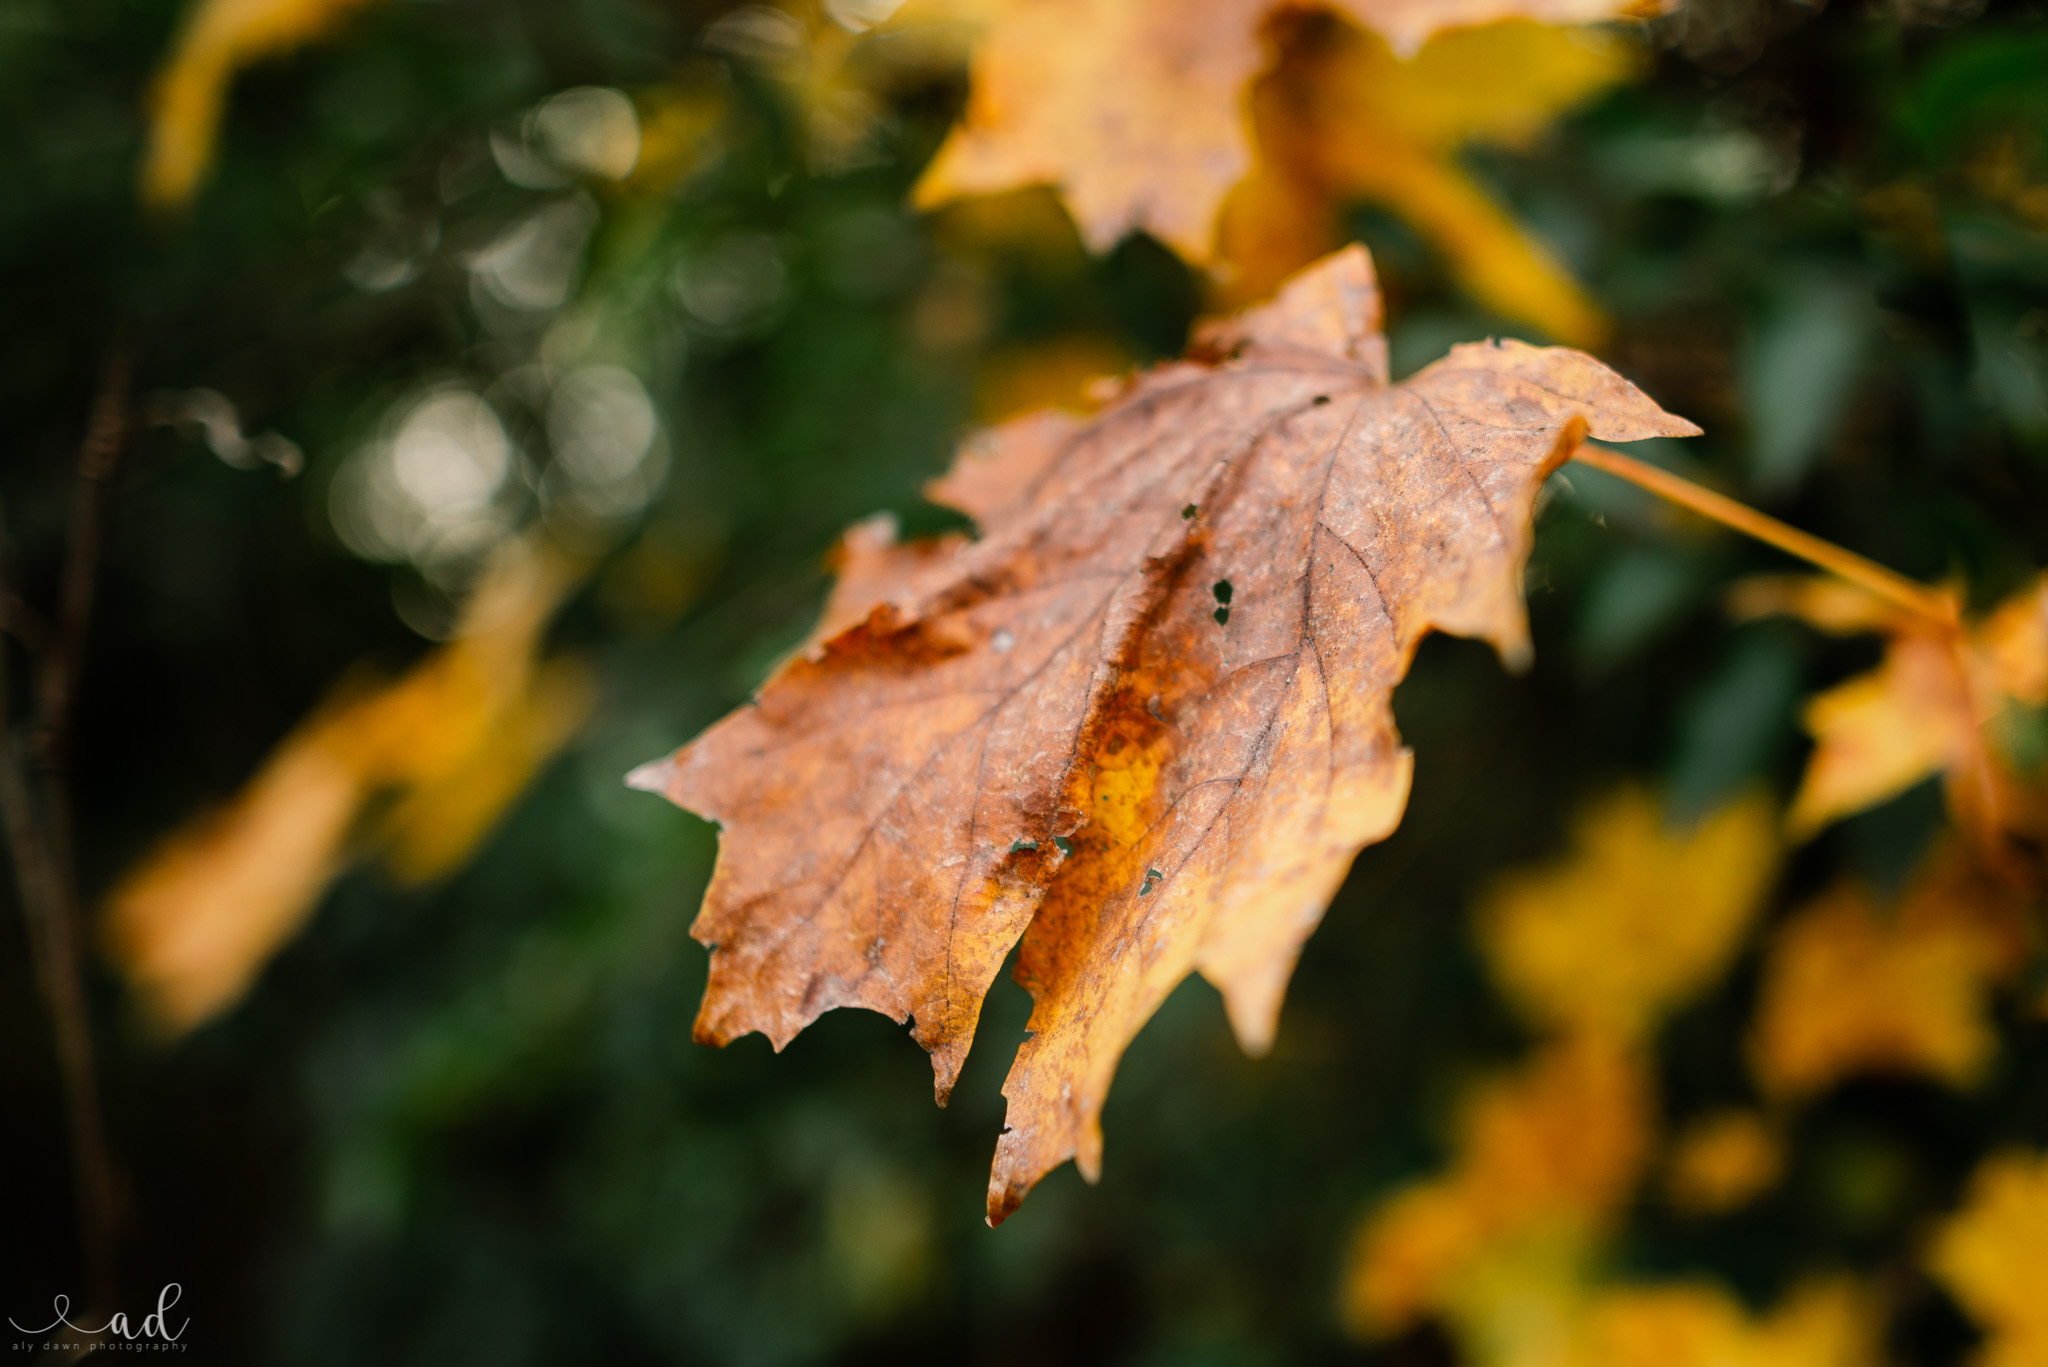 Fall Photography Tips - How to Capture Fall